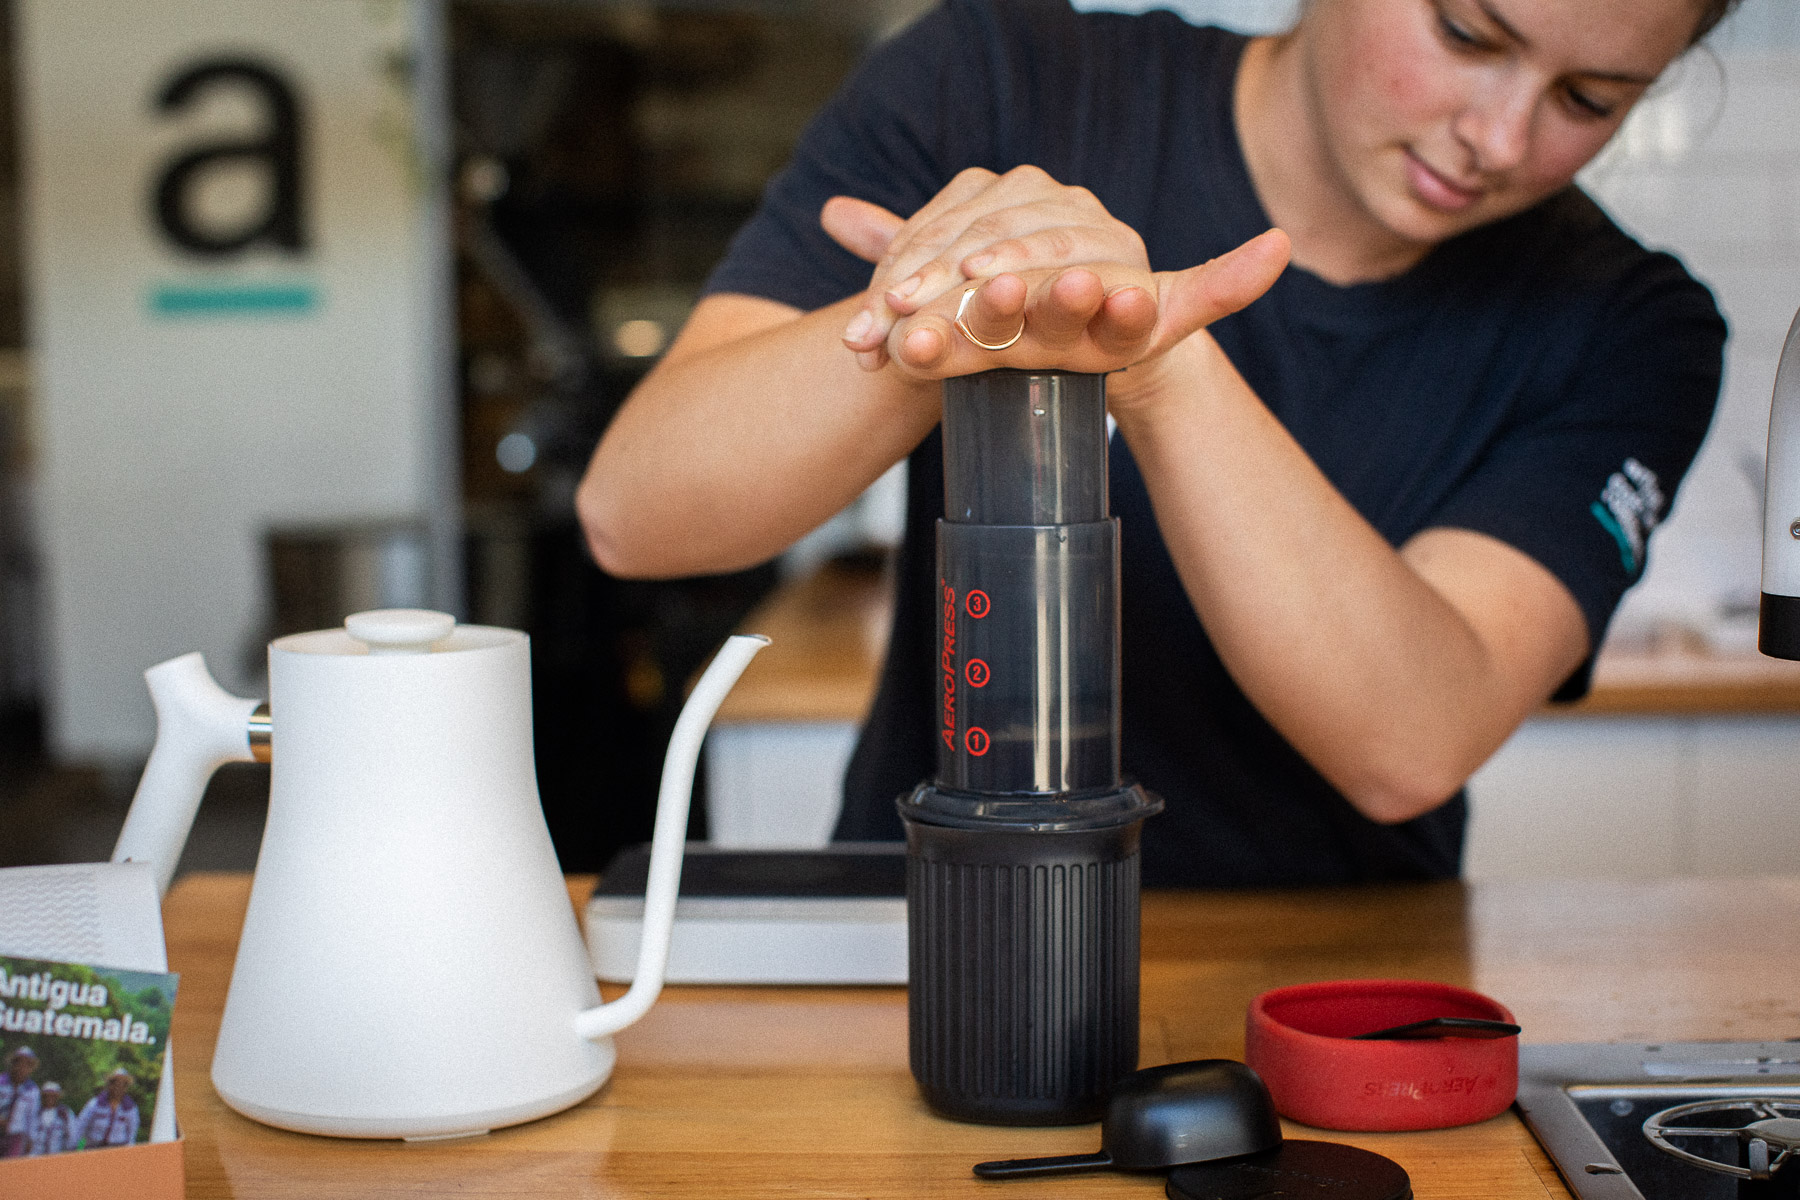 Coffs Harbour Baristas Show You How to Make Exceptional Coffee at Home